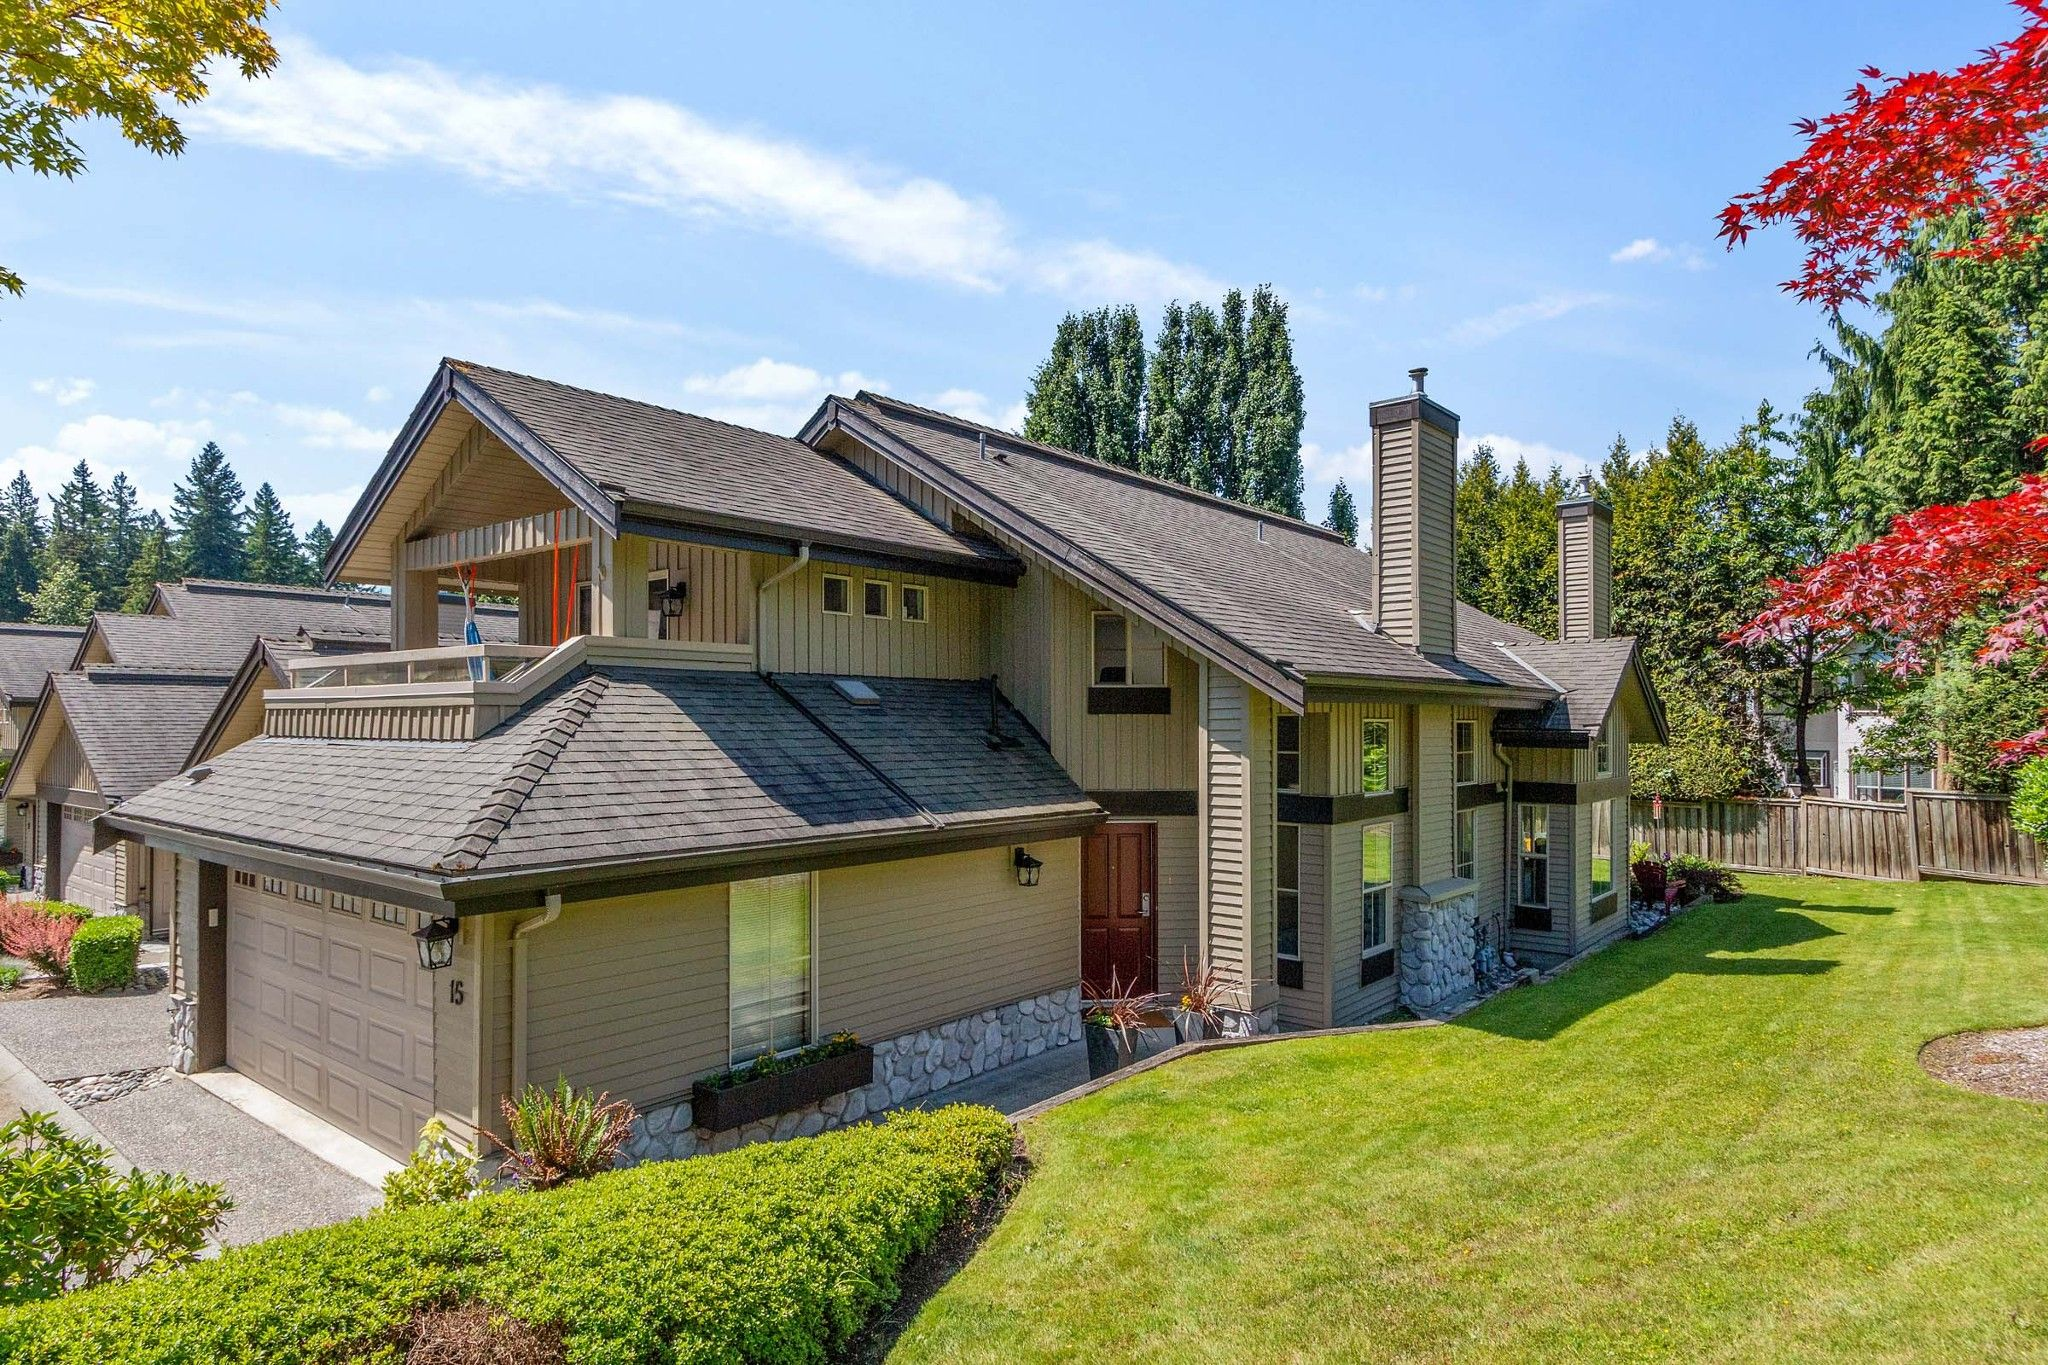 """Main Photo: 15 1550 LARKHALL Crescent in North Vancouver: Northlands Townhouse for sale in """"NAHANEE WOODS"""" : MLS®# R2594601"""